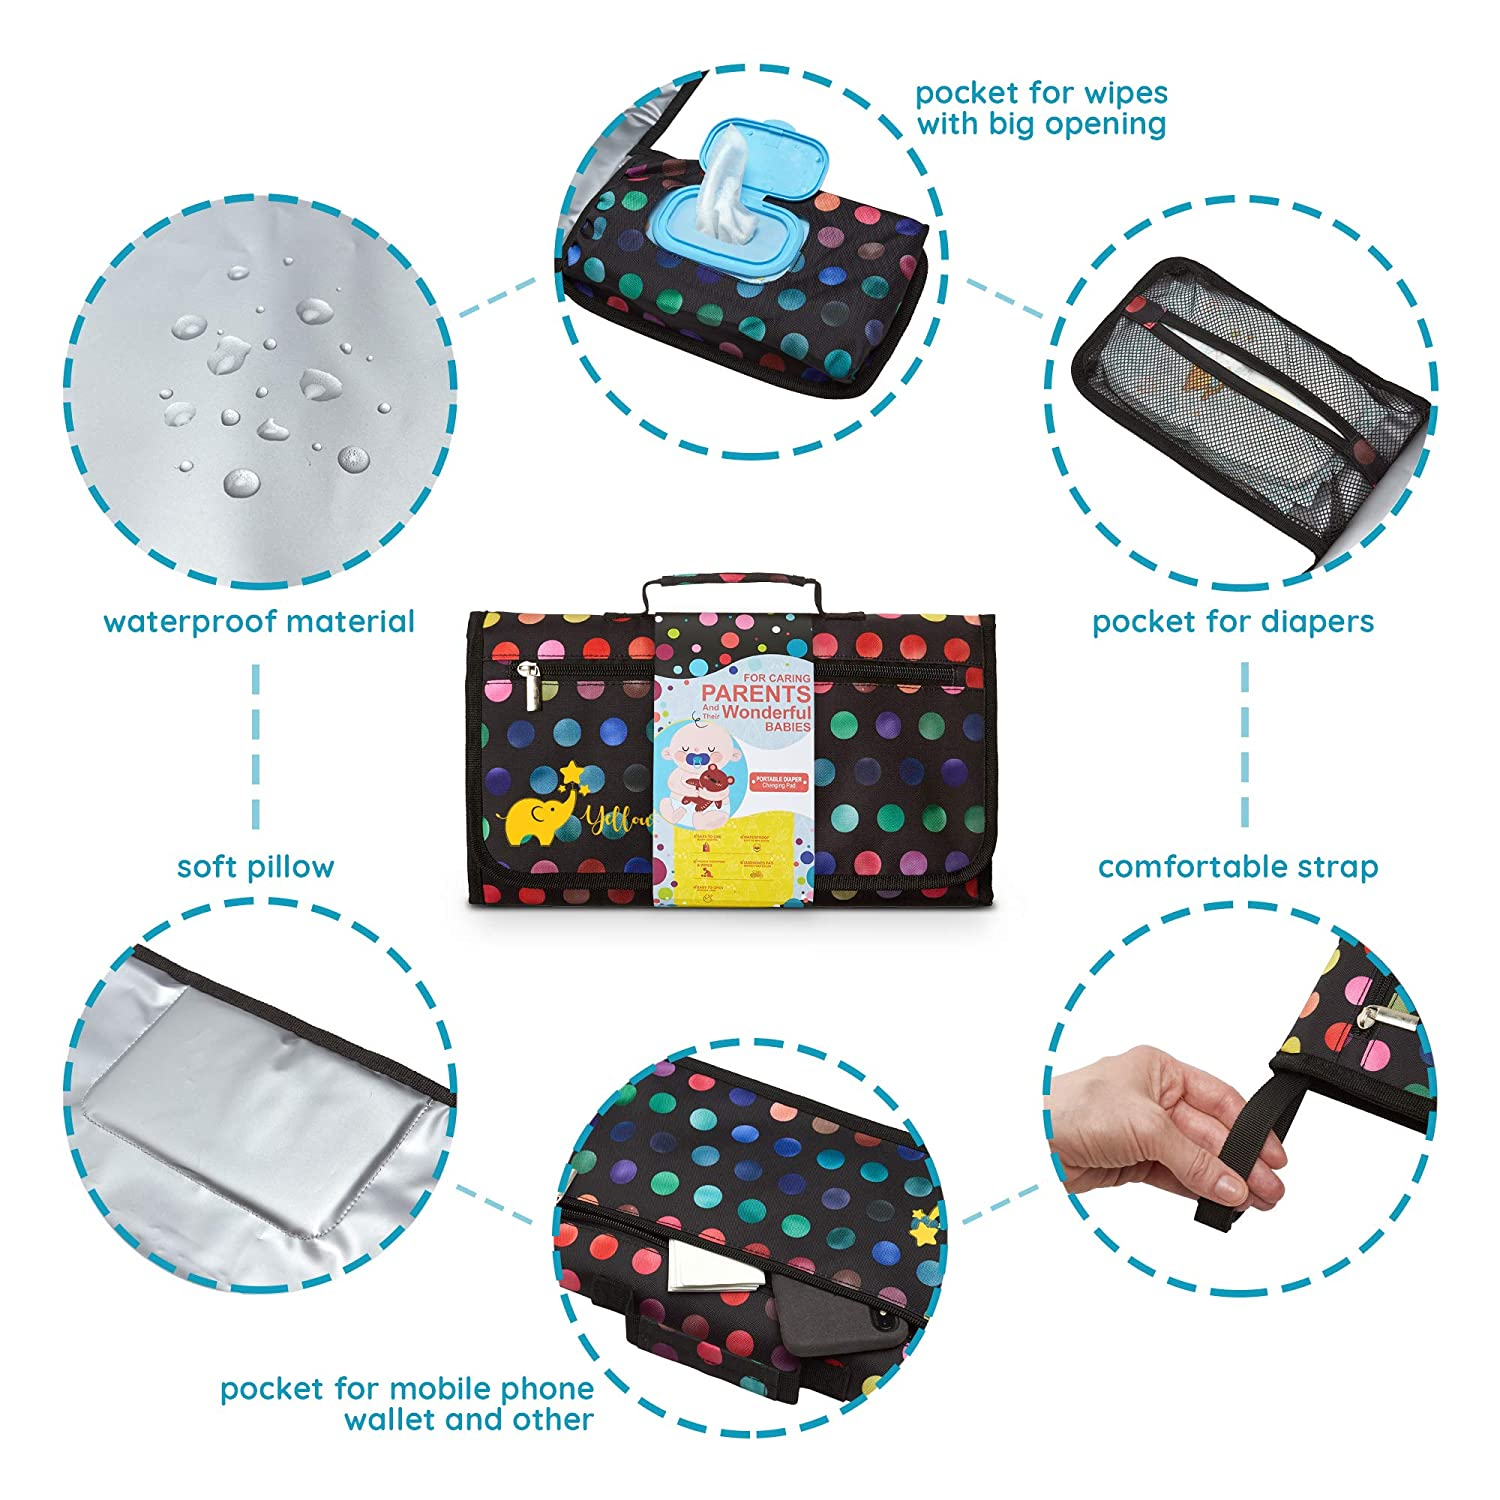 Ample Storage Space Lightweight Yellowphant Portable Baby Diaper Changing Pad Larger Napkin Slot Foldable /& Chic Mat Design and Durable Compact for Smart Diaper Changing Station